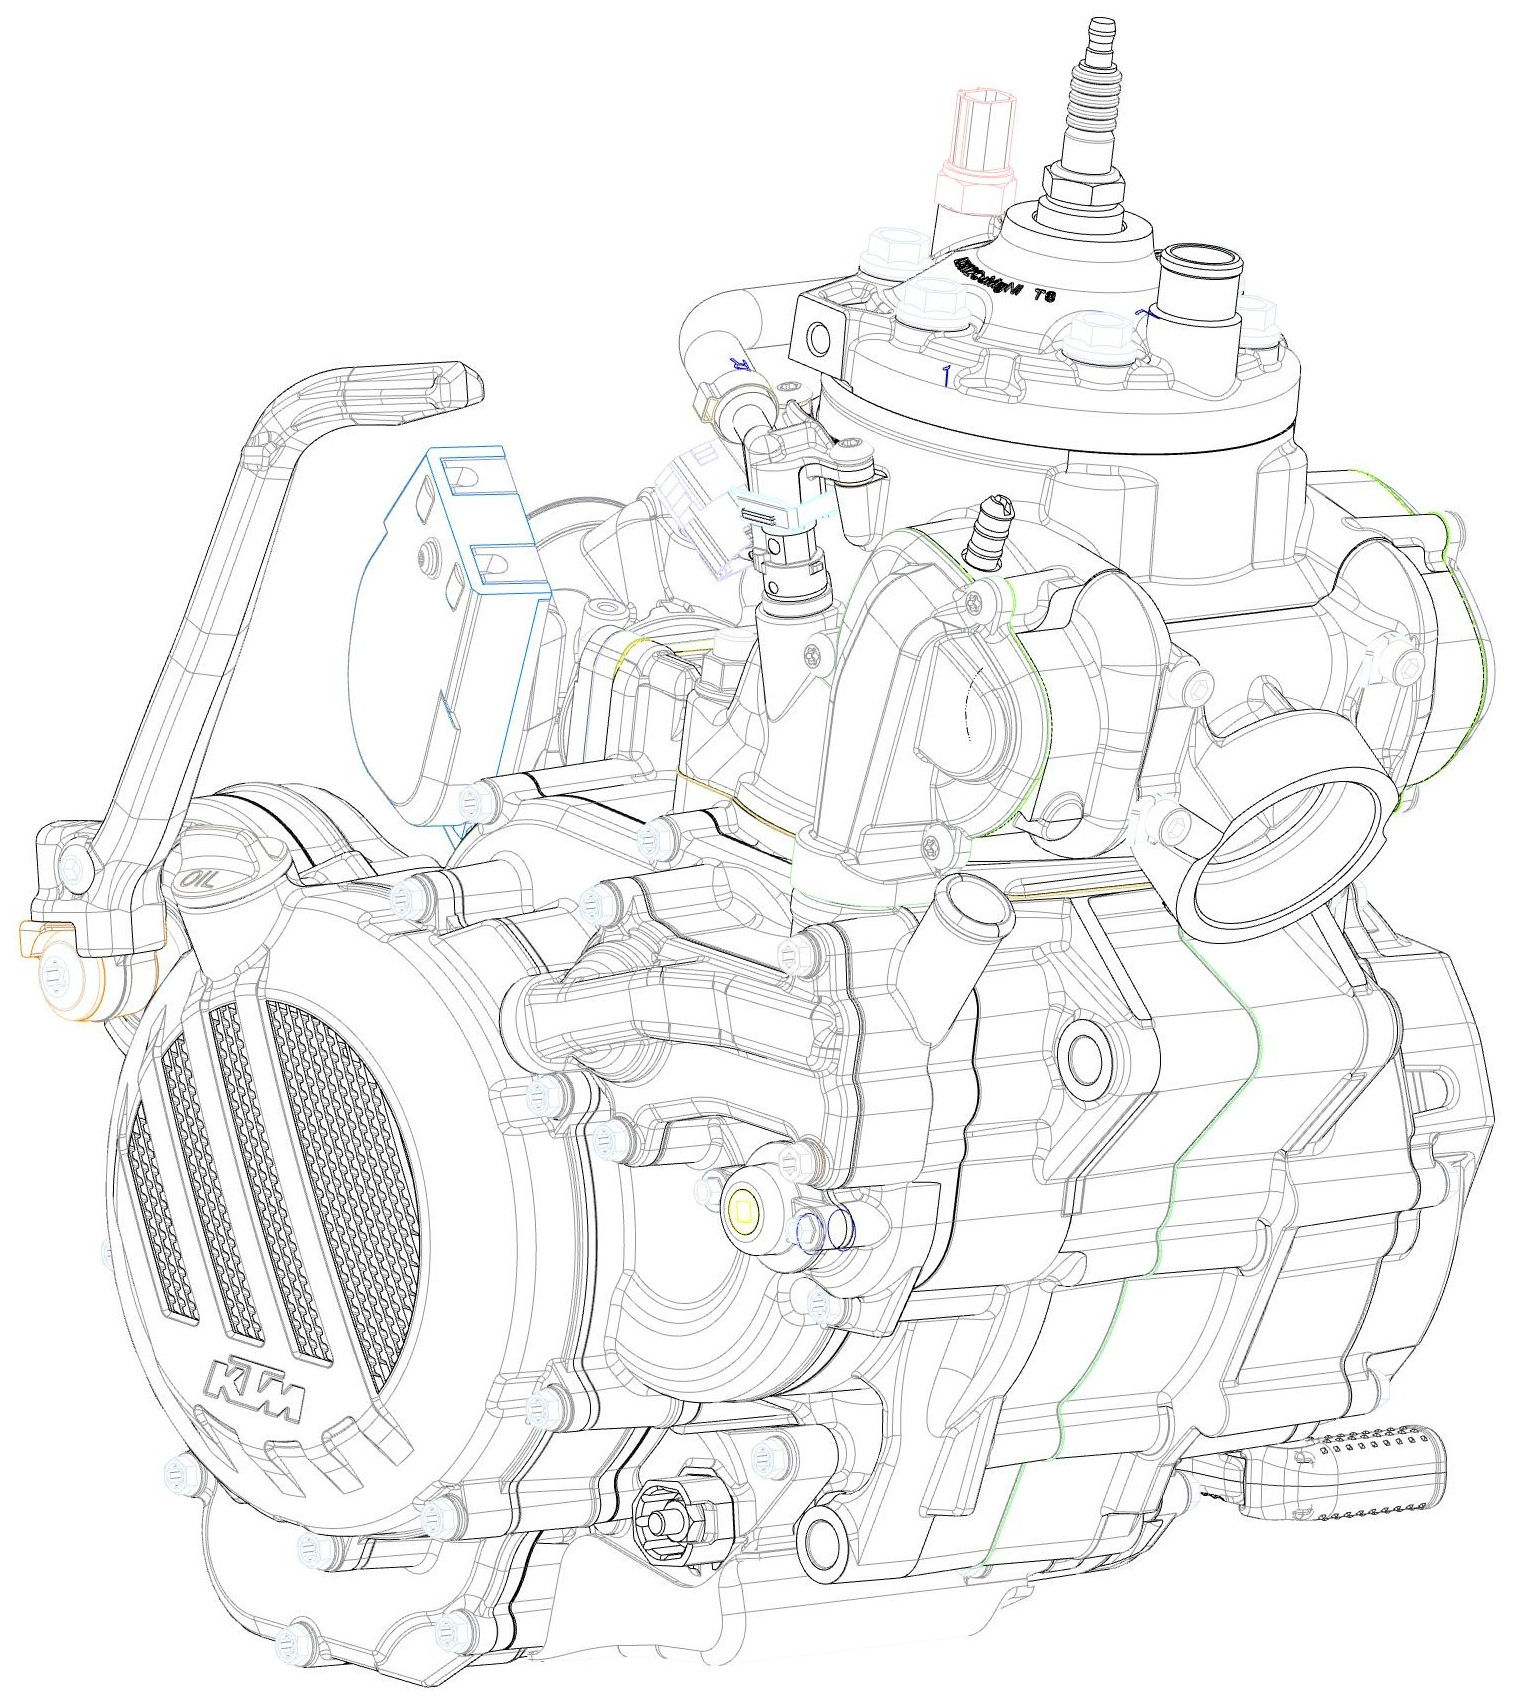 Ktm Unveils New Two Stroke Fuel Injection Engine